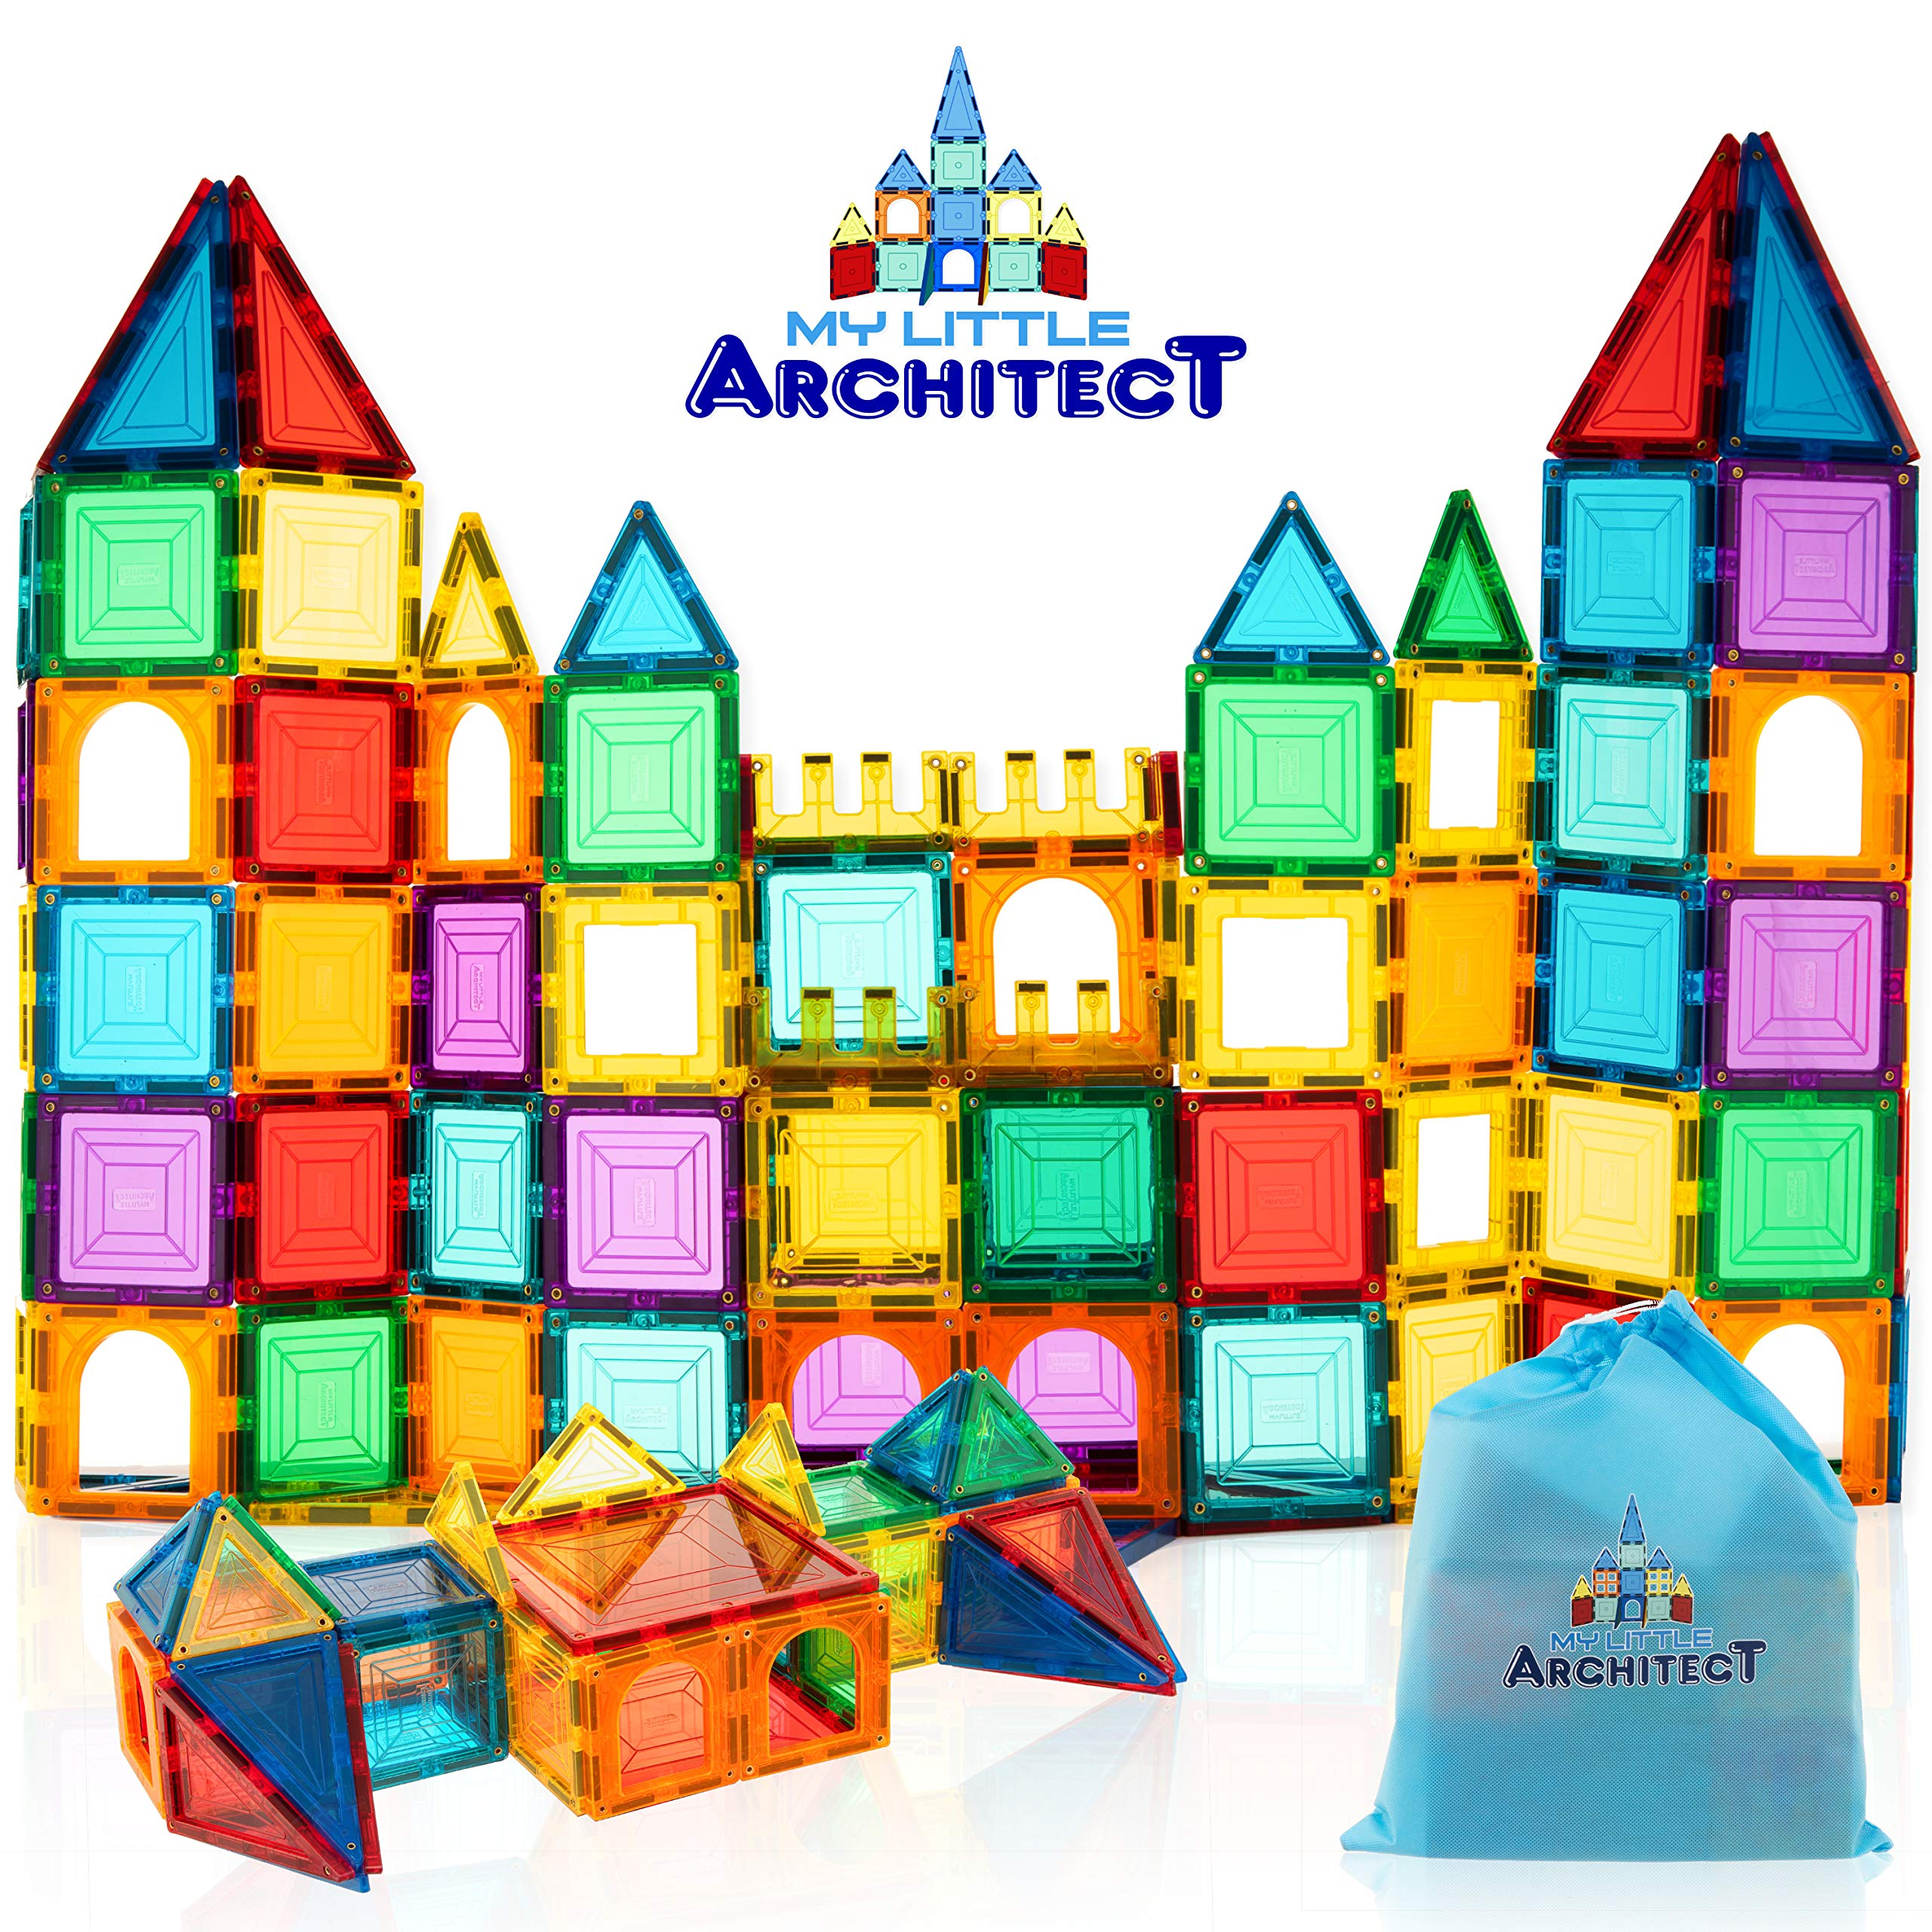 My Little Architect, Magnetic Tiles for Kids, 60-Piece 3D Magnet Block Building Set Educational Construction Toy, Best Gift for Boys and Girls 3-Years Old and up, Bonus Stylish Carrying Bag. by My Little Architect